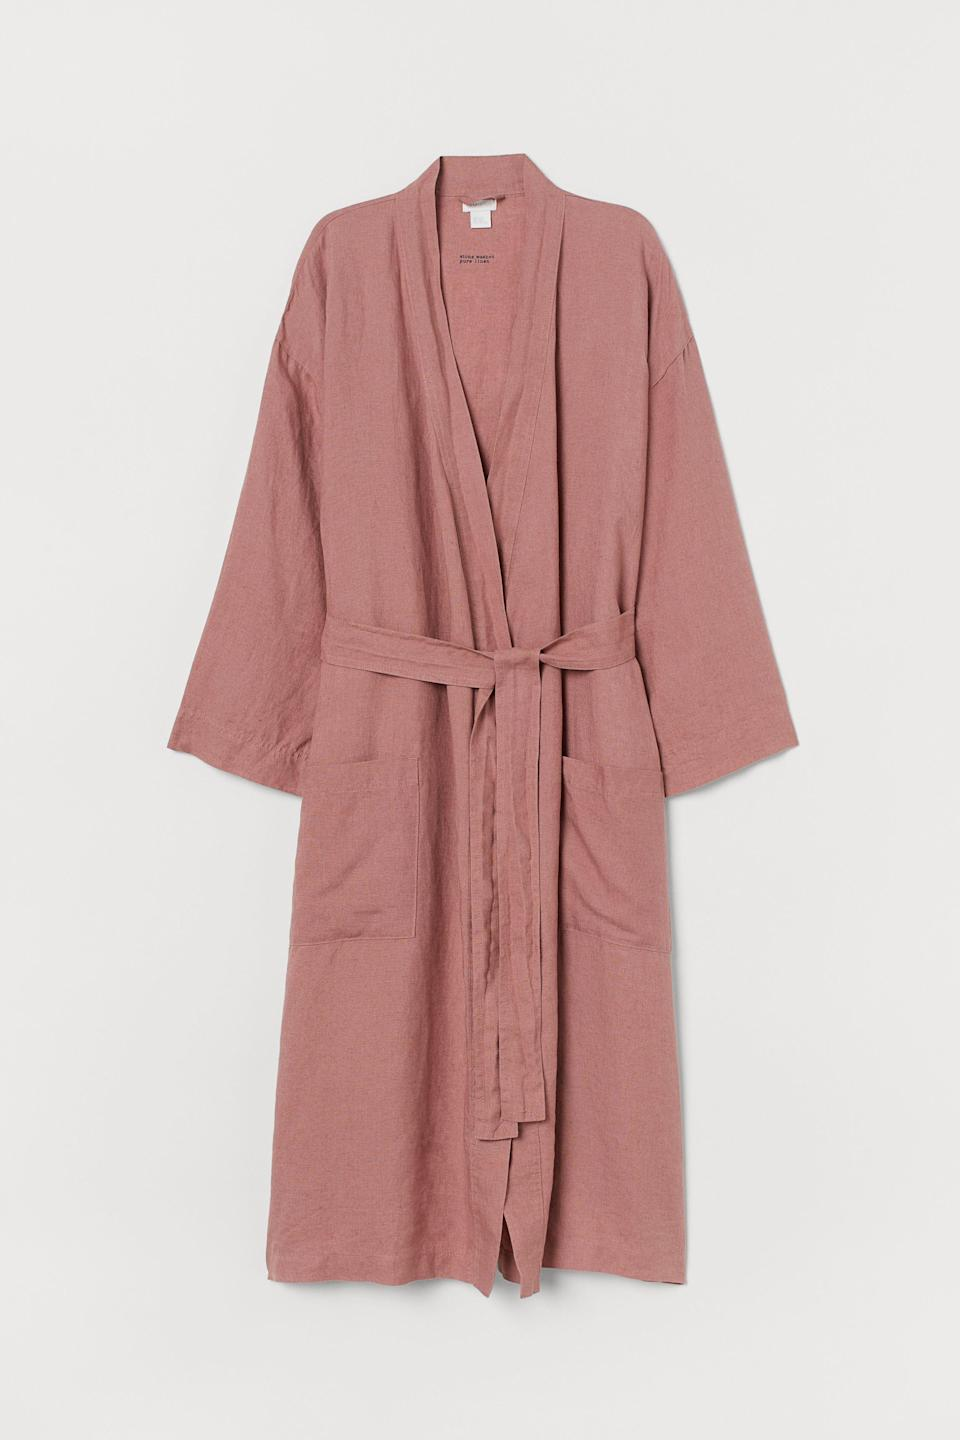 "<h3>H&M Home Washed Linen Bathrobe</h3> <br>The dusty rose washed-linen robe of your mom's dreams does exist IRL — and you can snag it on H&M Home for under $50. <br><br><strong>H&M Home</strong> Washed Linen Bathrobe, $, available at <a href=""https://go.skimresources.com/?id=30283X879131&url=https%3A%2F%2Fwww2.hm.com%2Fen_us%2Fproductpage.0107727054.html"" rel=""nofollow noopener"" target=""_blank"" data-ylk=""slk:H&M Home"" class=""link rapid-noclick-resp"">H&M Home</a><br>"